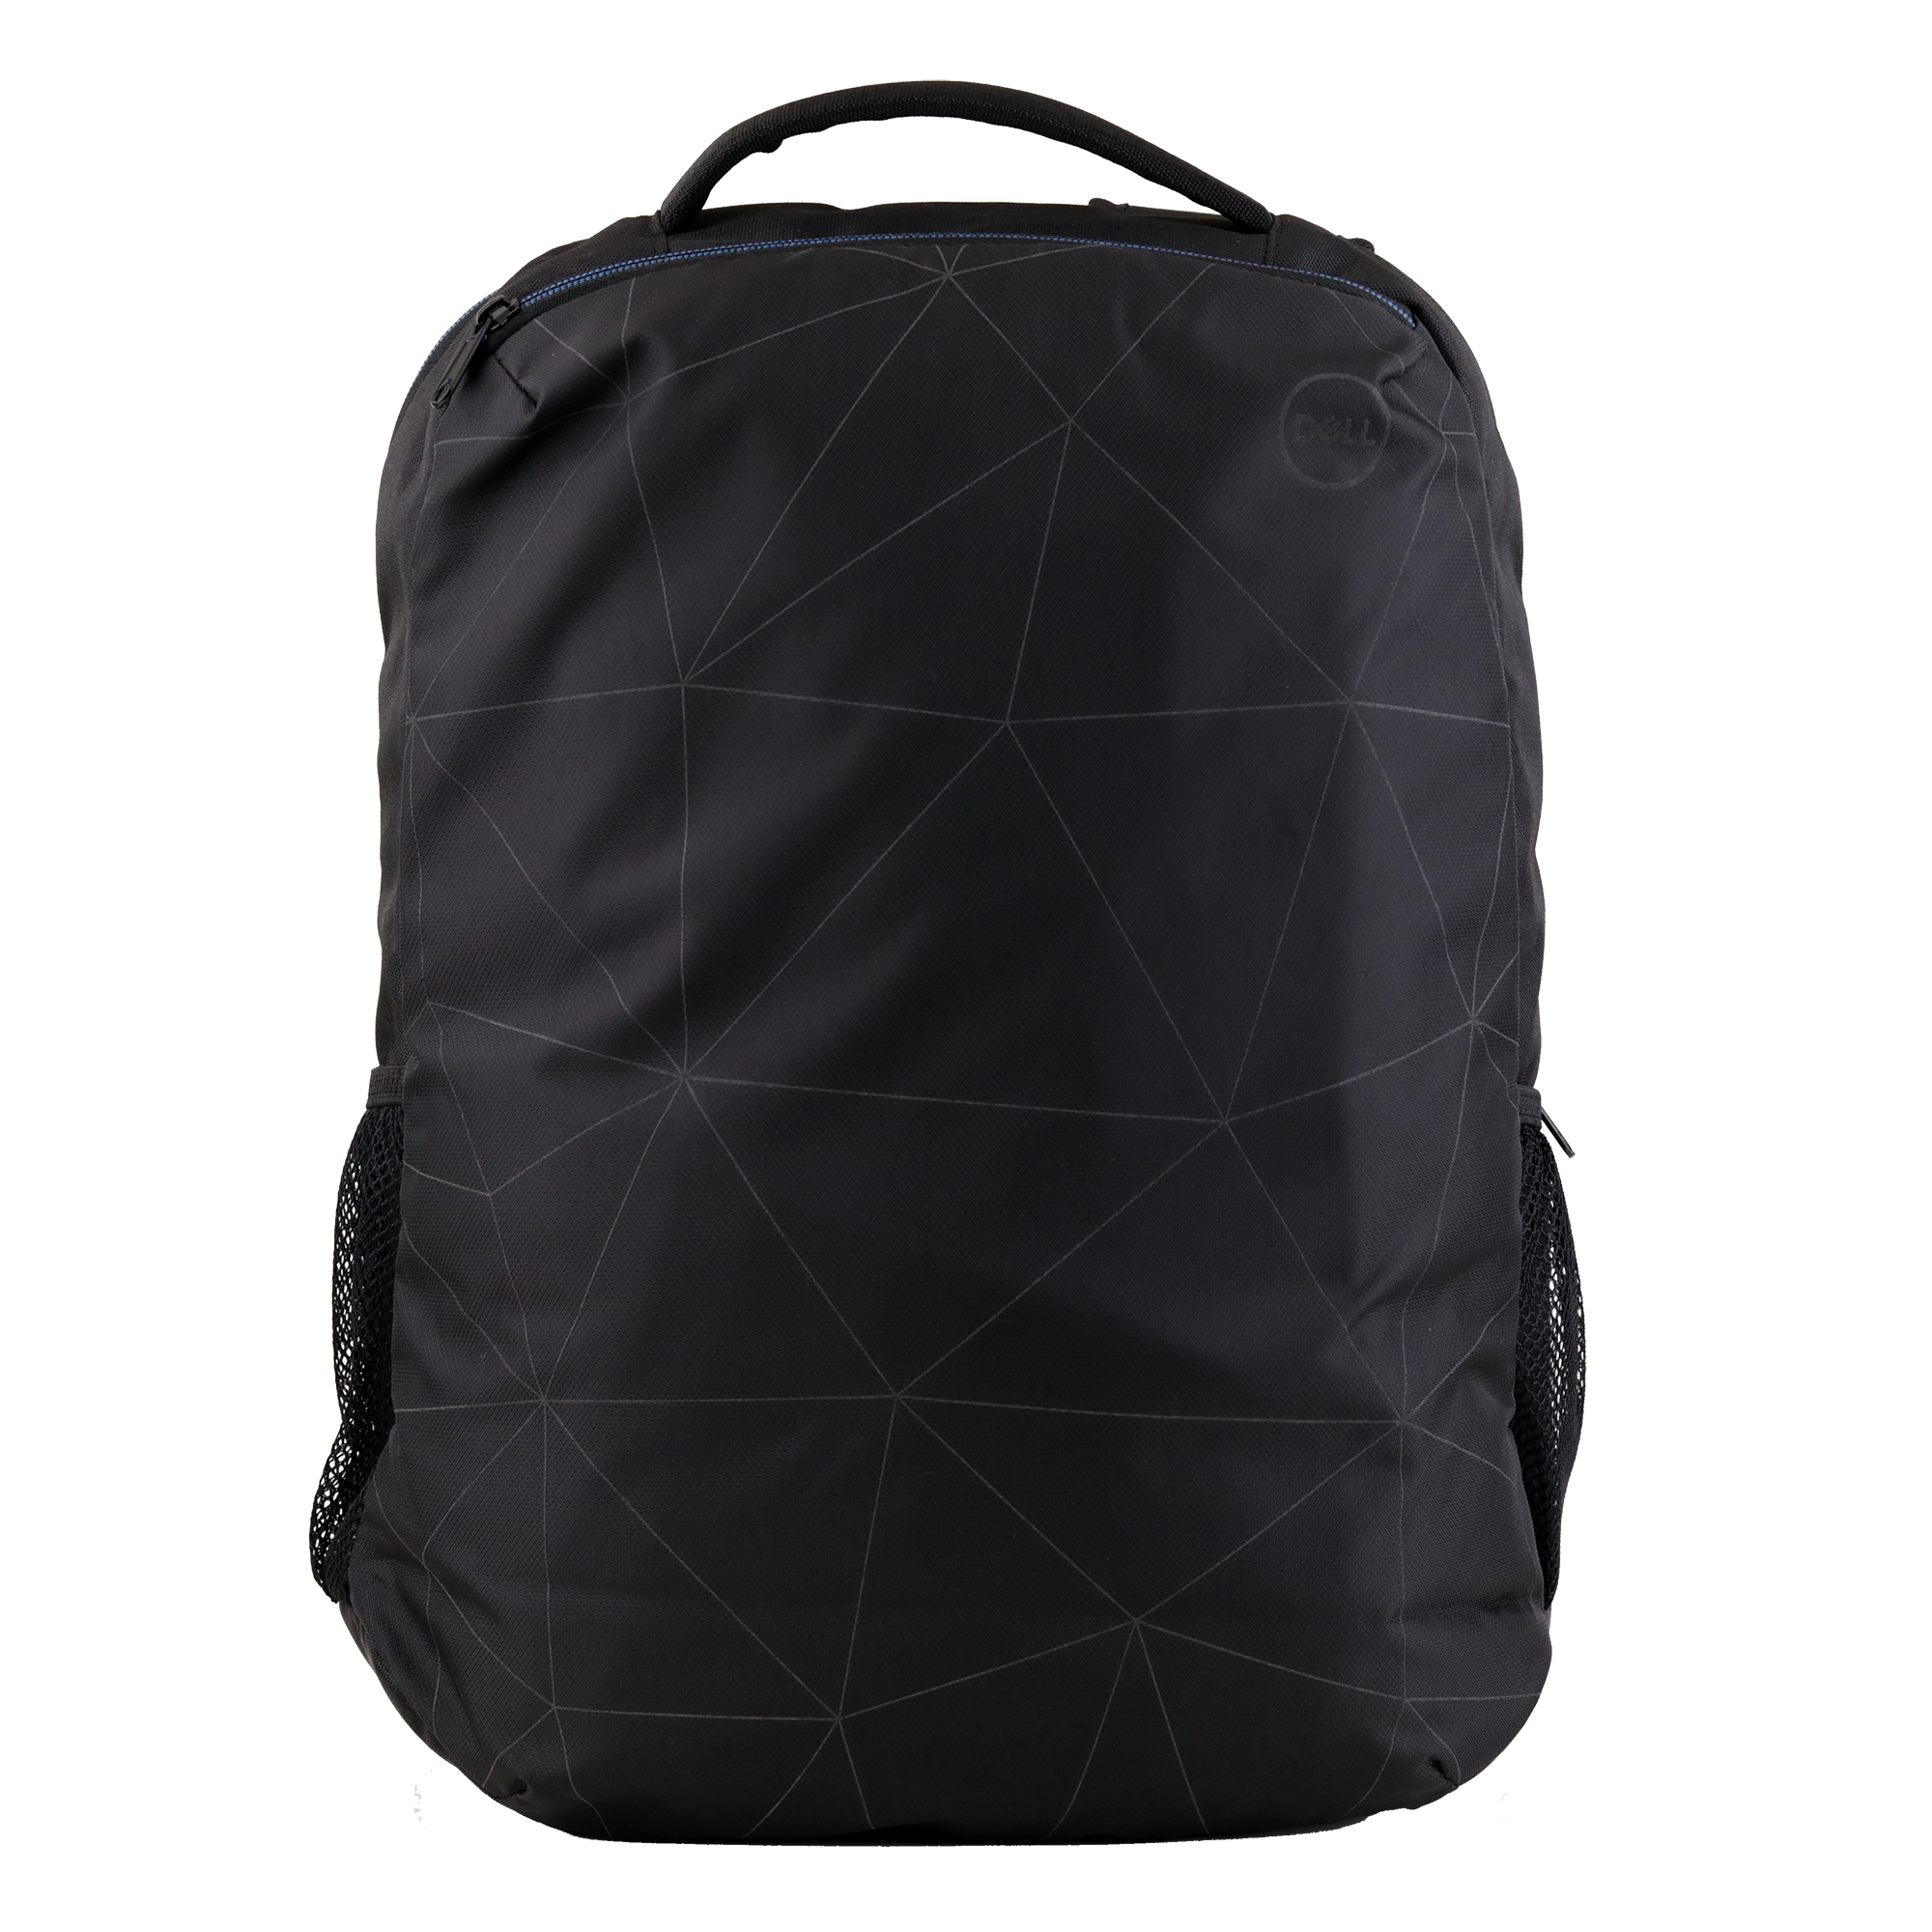 Dell Essential 20 Litres Polyester Backpack for 15.6 Inch Laptop (Water Resistant, ES1520P, Black)_1